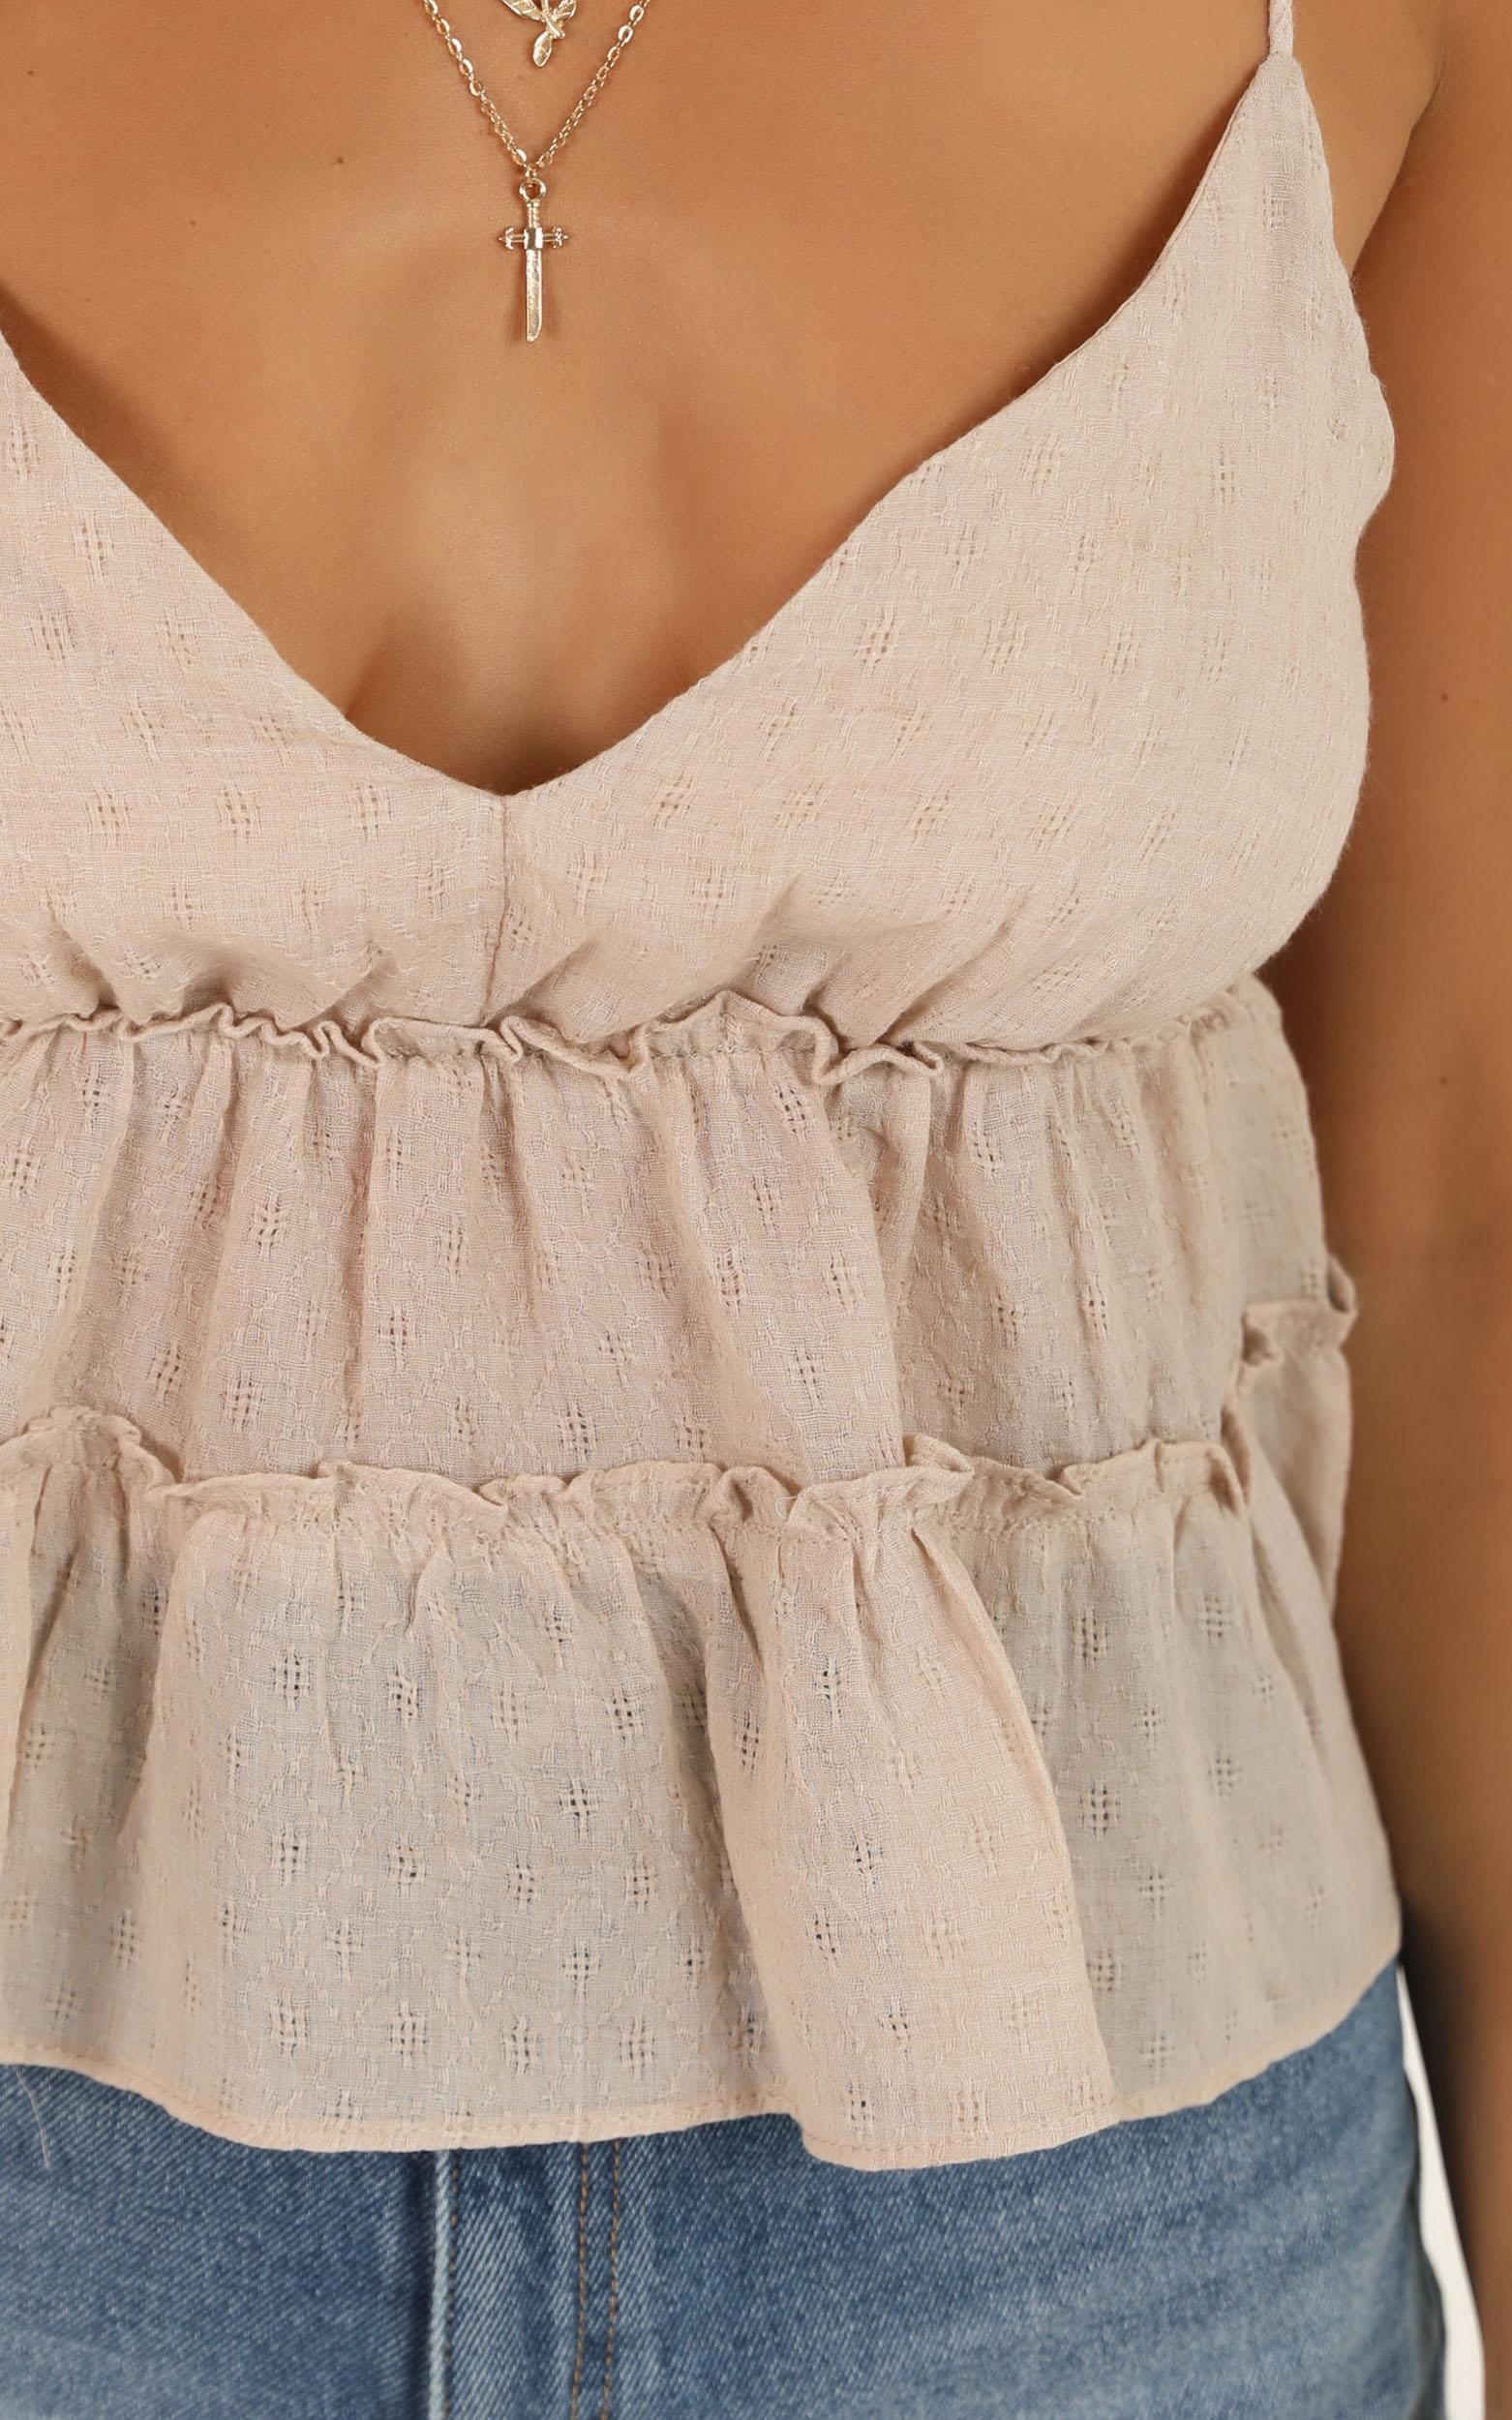 Less Complaining top in blush - 12 (L), Blush, hi-res image number null